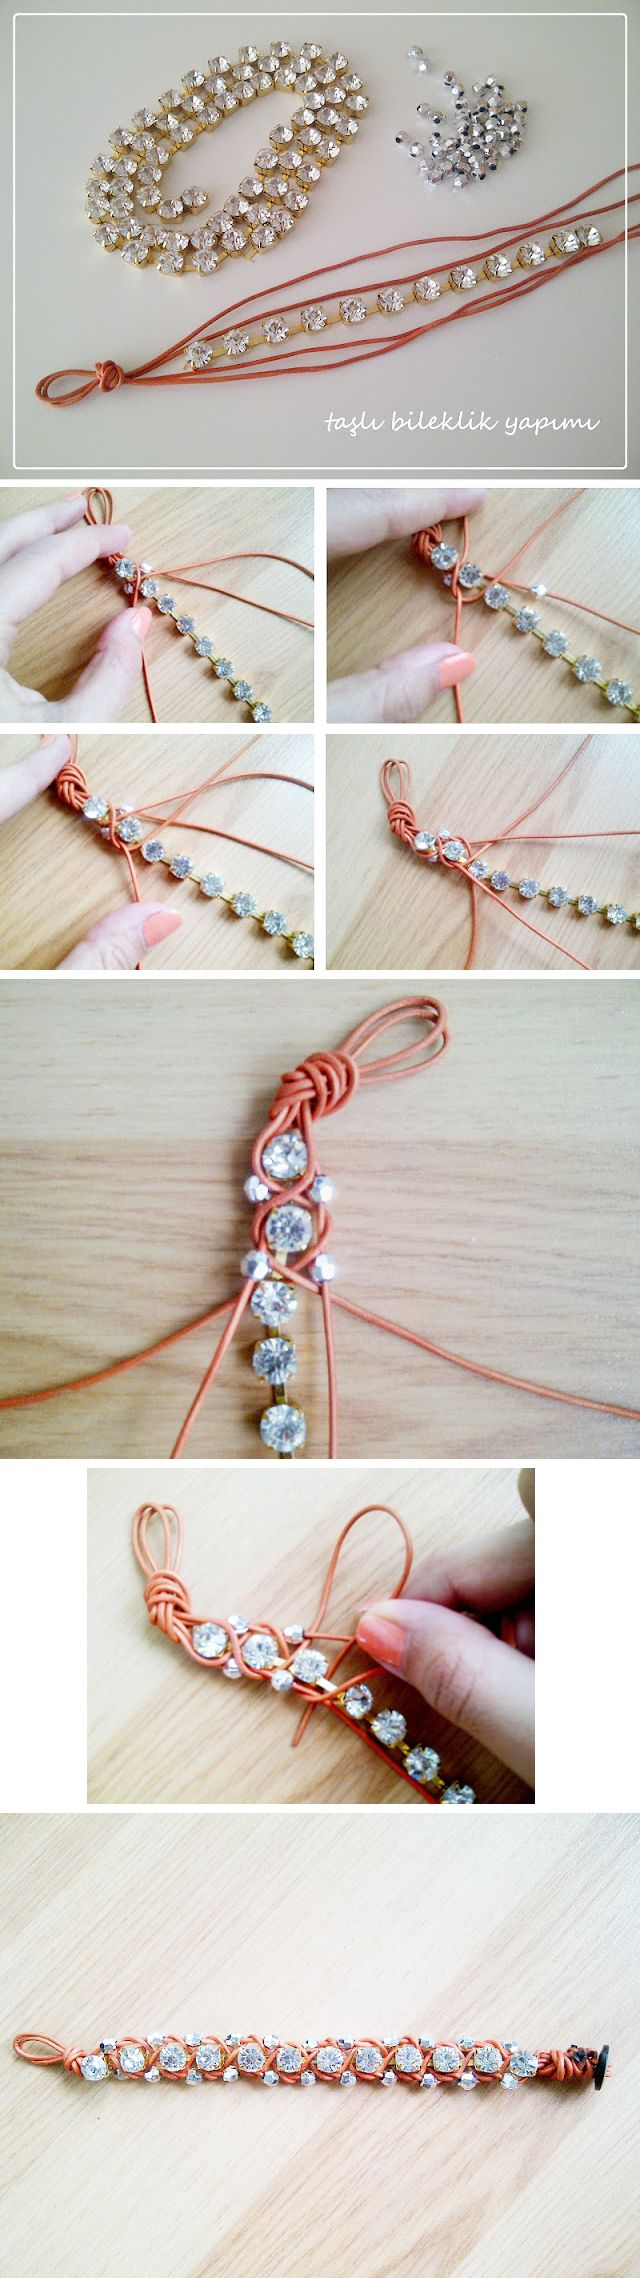 Diy rhinestone bracelet jewelry pinterest bracelets craft the best diy projects diy ideas and tutorials sewing paper craft diy best diy ideas jewelry diy rhinestone bracelet read more solutioingenieria Choice Image